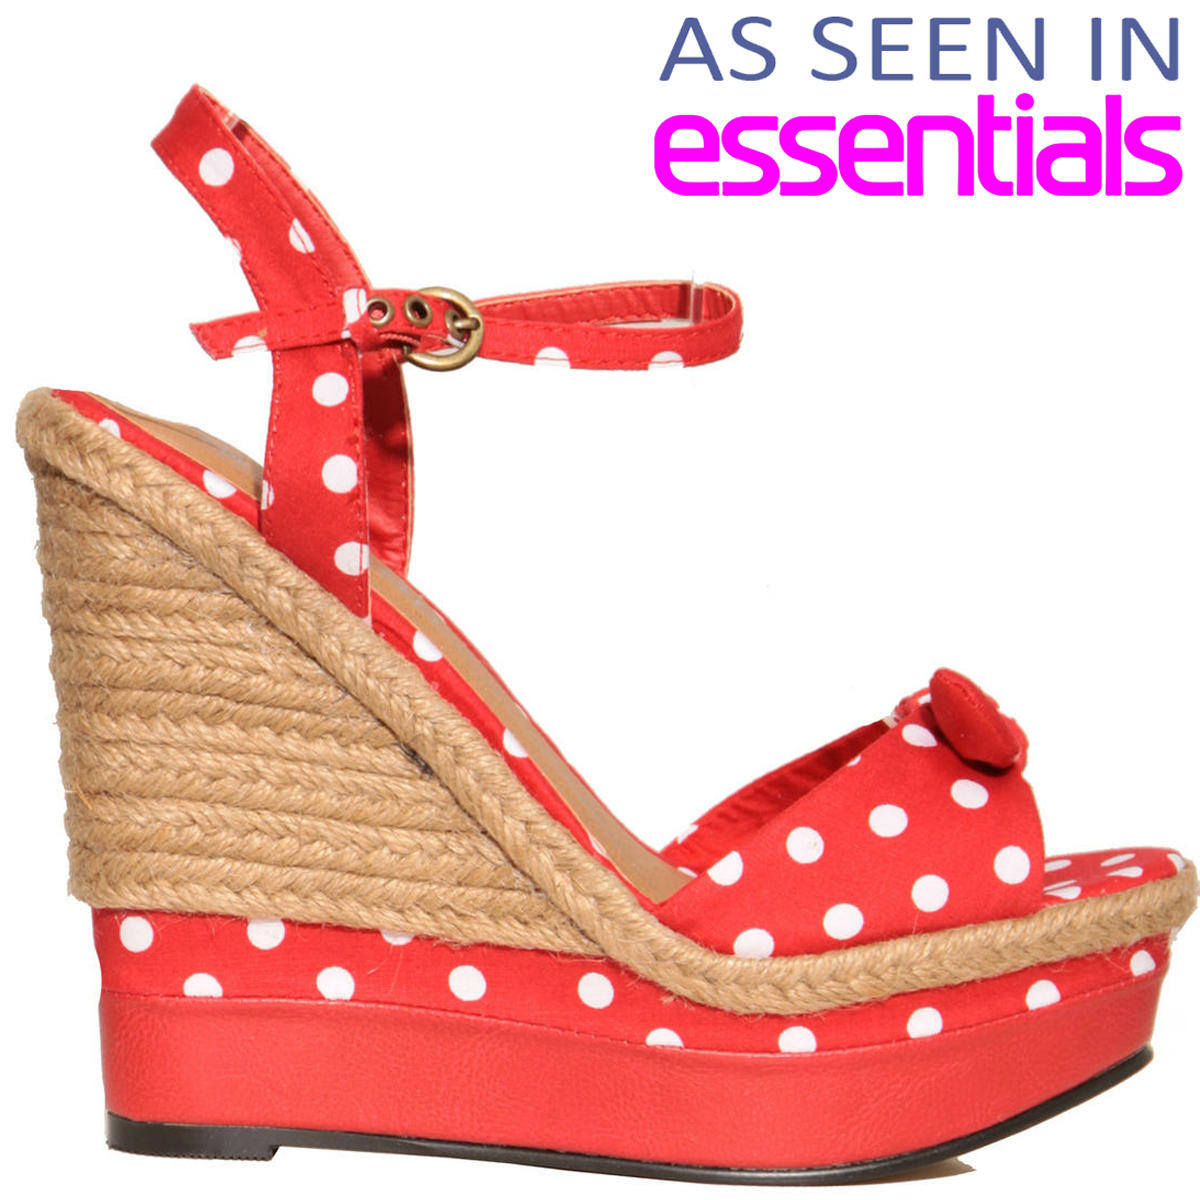 Red Polka Dot Raffia Wedge Sandal Preview